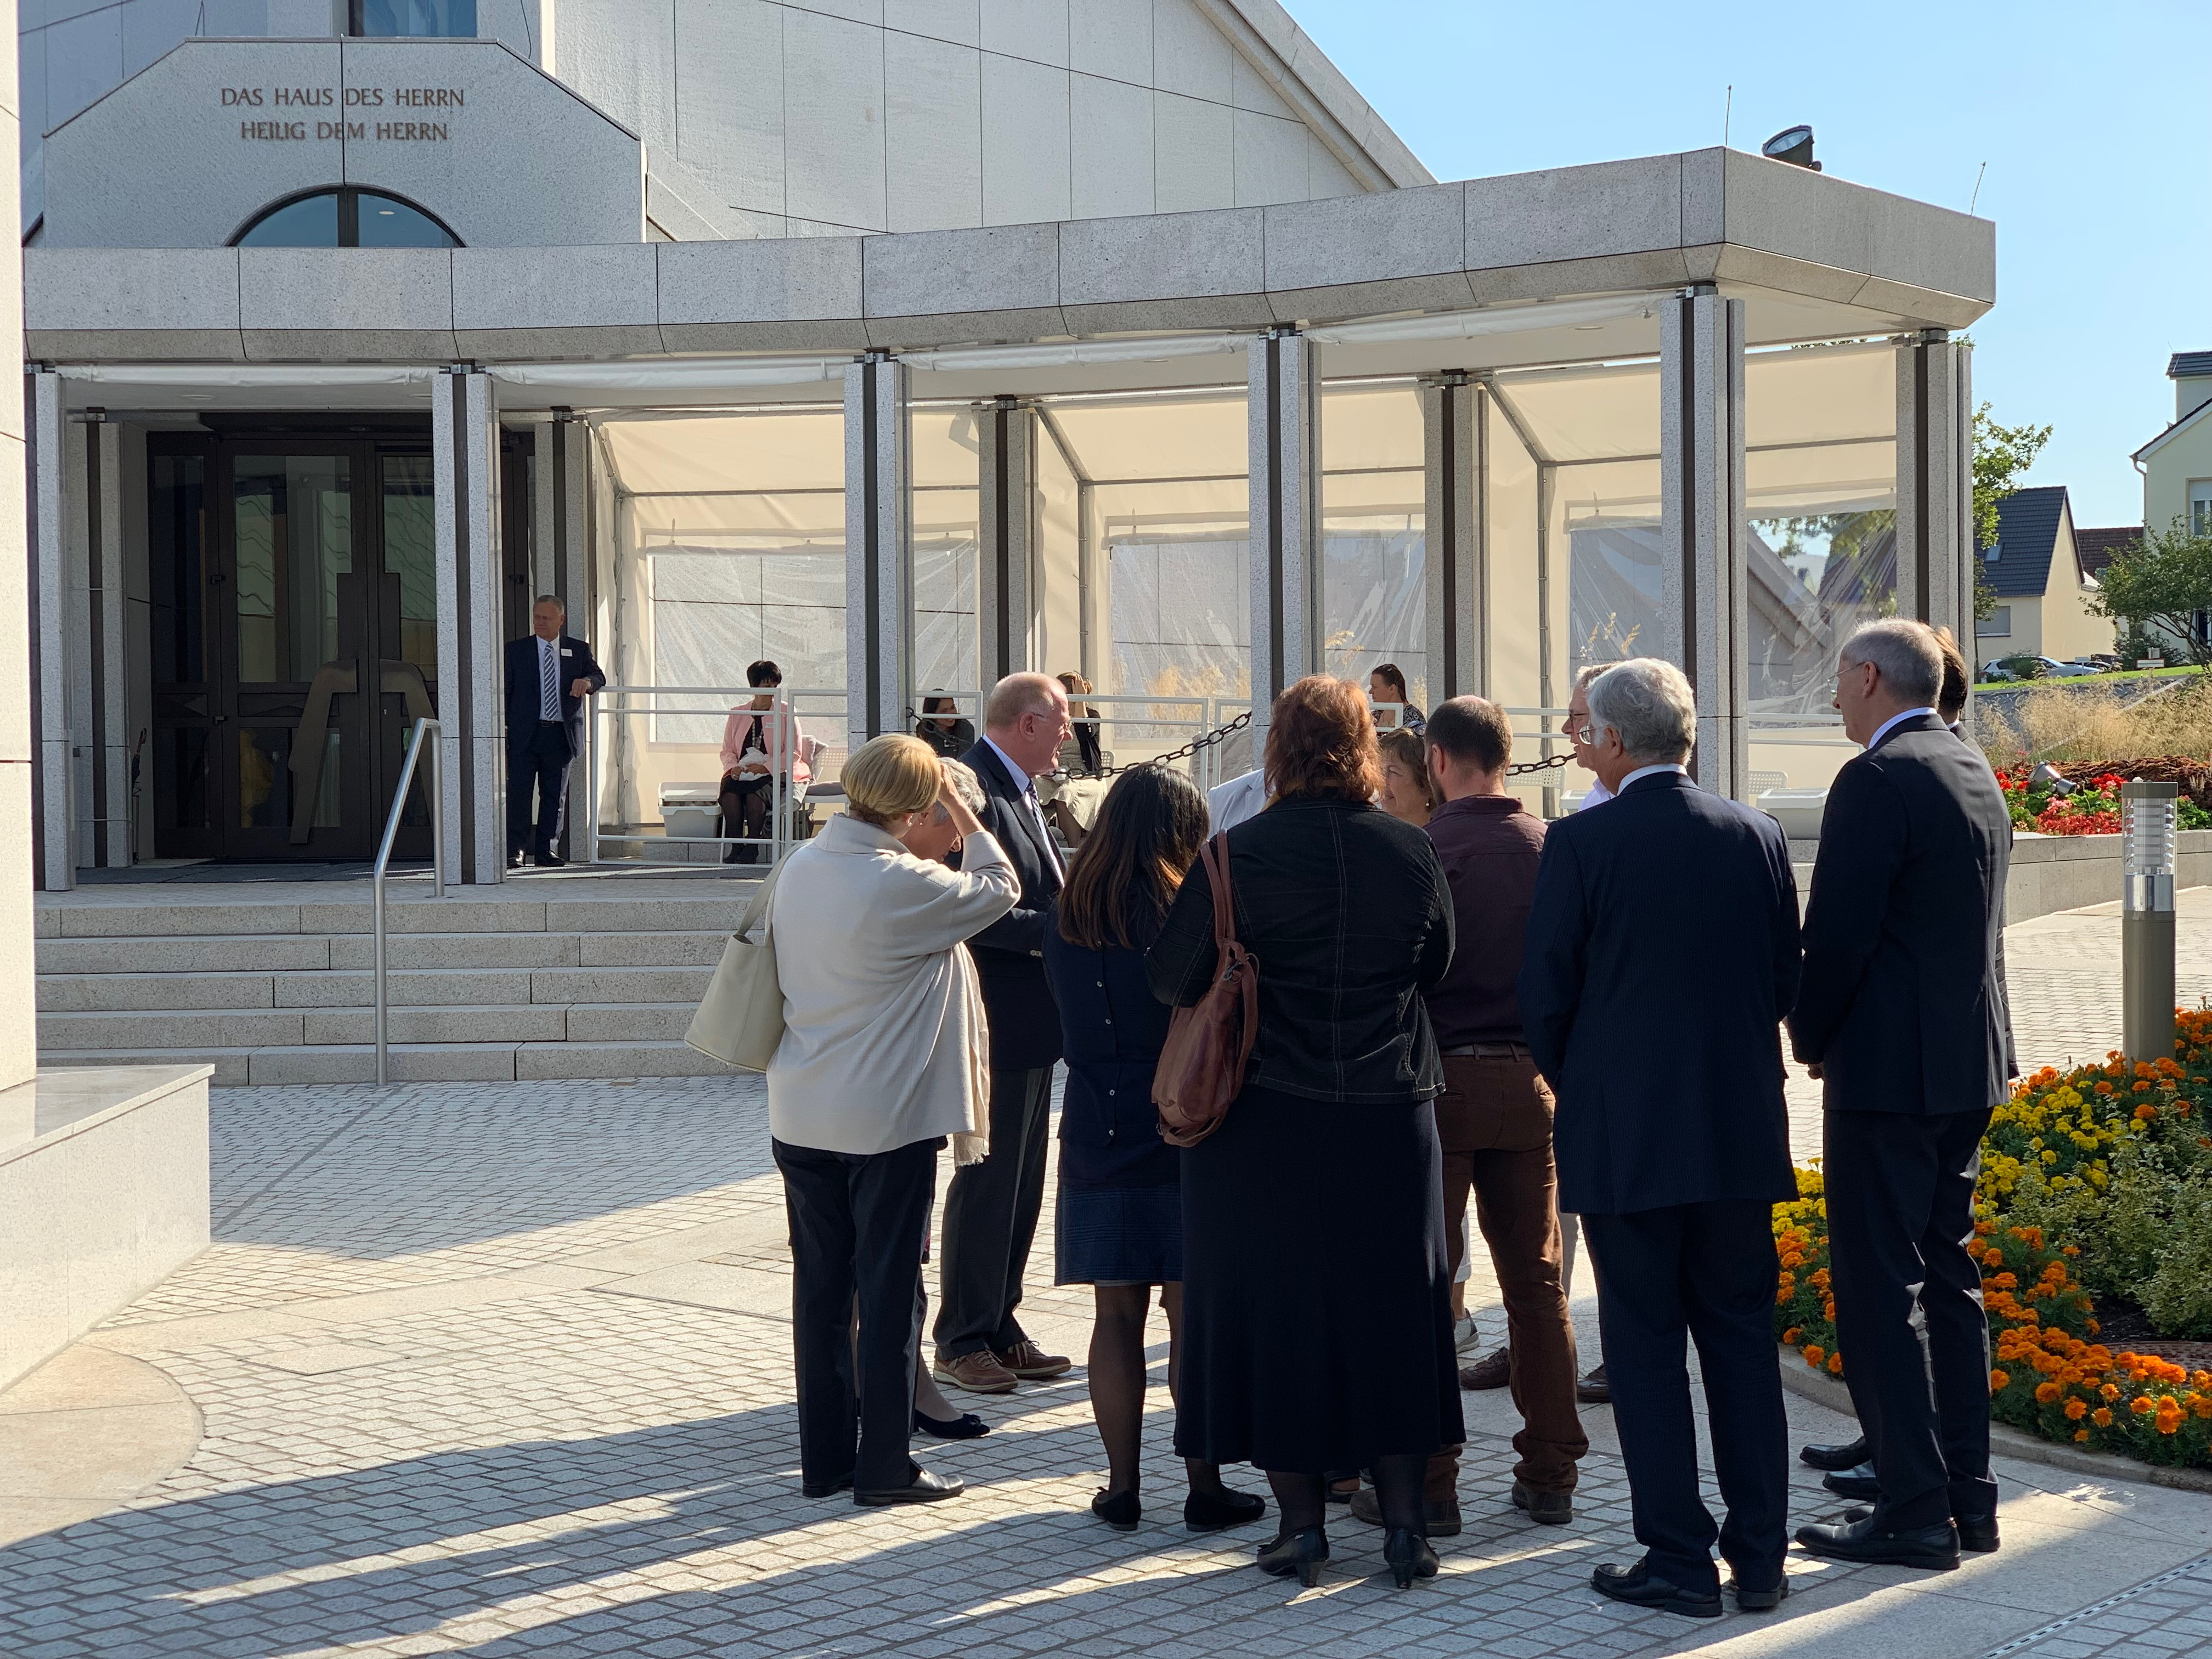 Media tour the Frankfurt Germany Temple on Sept. 9, 2019, in conjunction with the beginning of the public open house before the temple is rededicated.